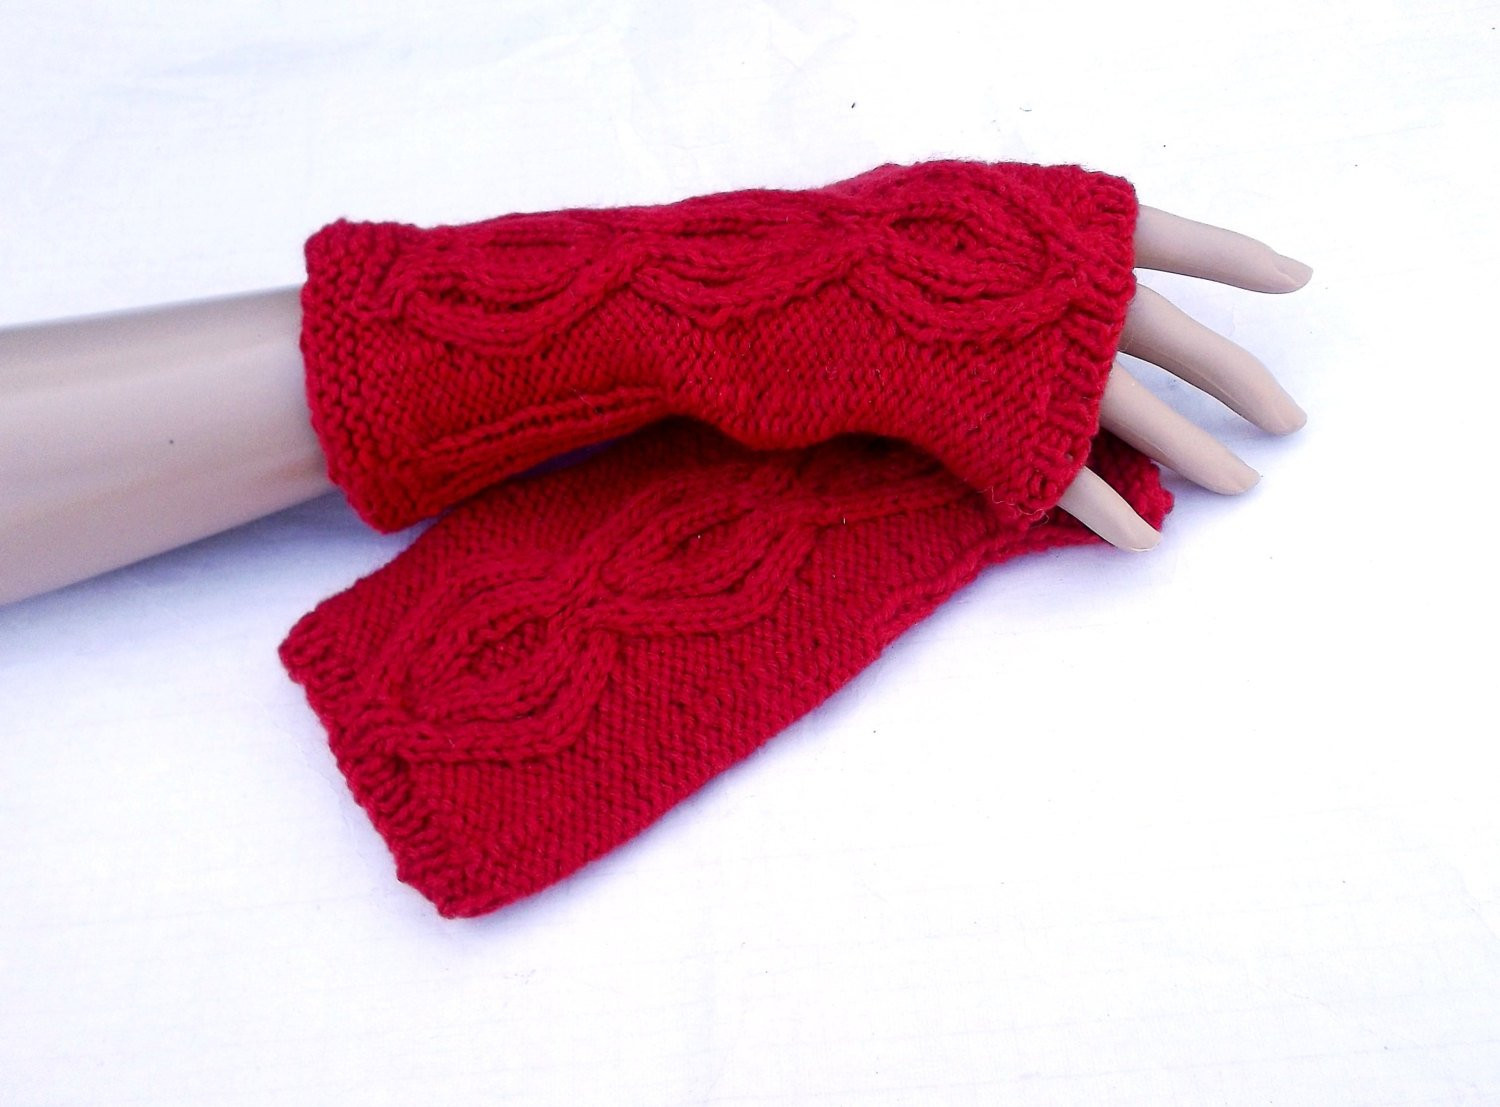 Elegant Hand Knitted Red Wool Arm Warmers Knit by Peonijahandmadeshop Knit Arm Warmers Of Brilliant 41 Images Knit Arm Warmers